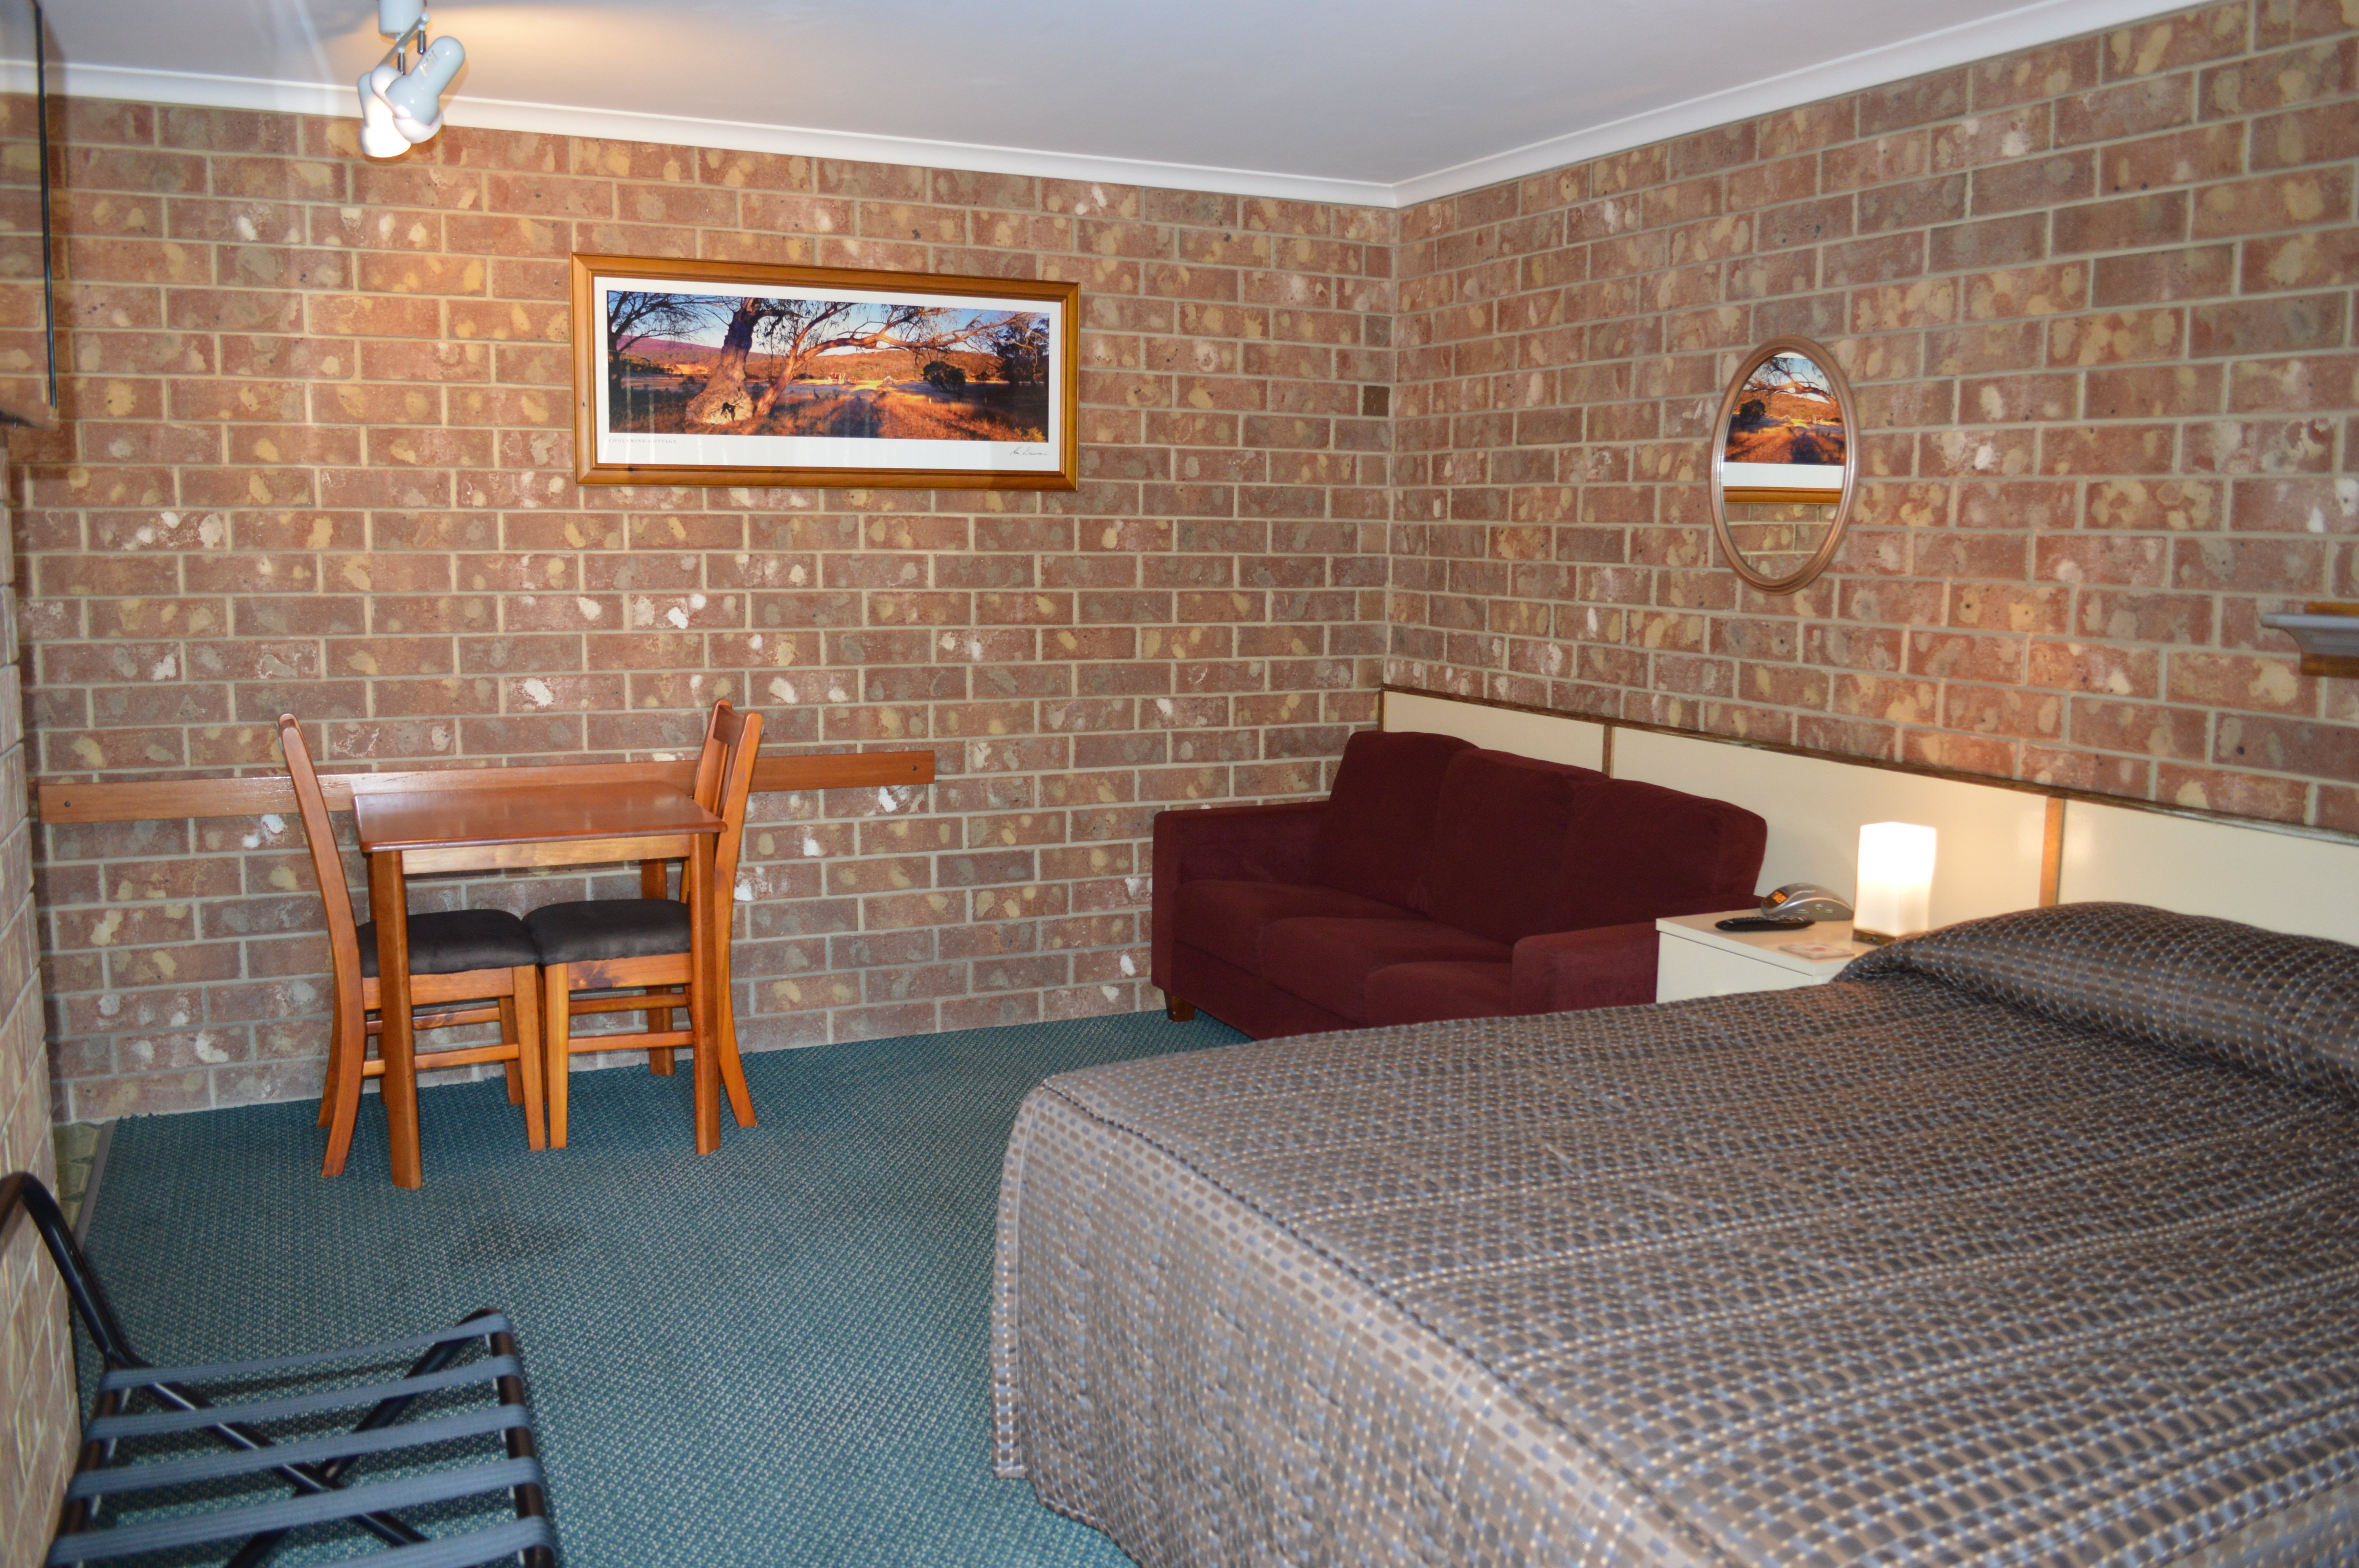 Interior view of the motel room